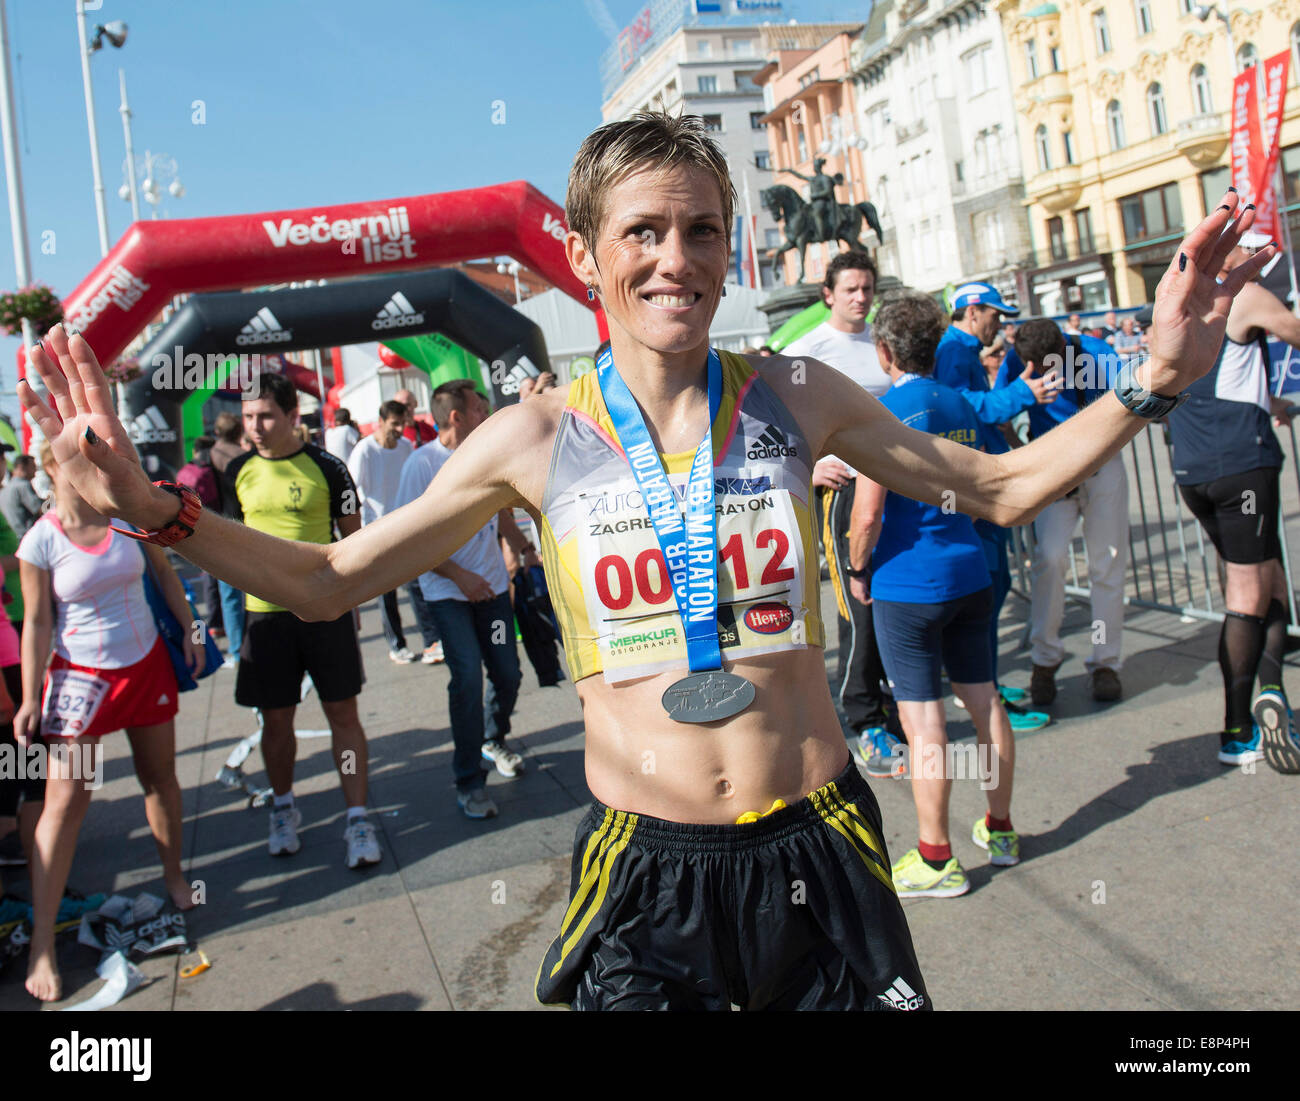 Zagreb, Croatia. 12th Oct, 2014. Winner of women's competition Olivera Jevtic of Serbia celebrates after the - Stock Image